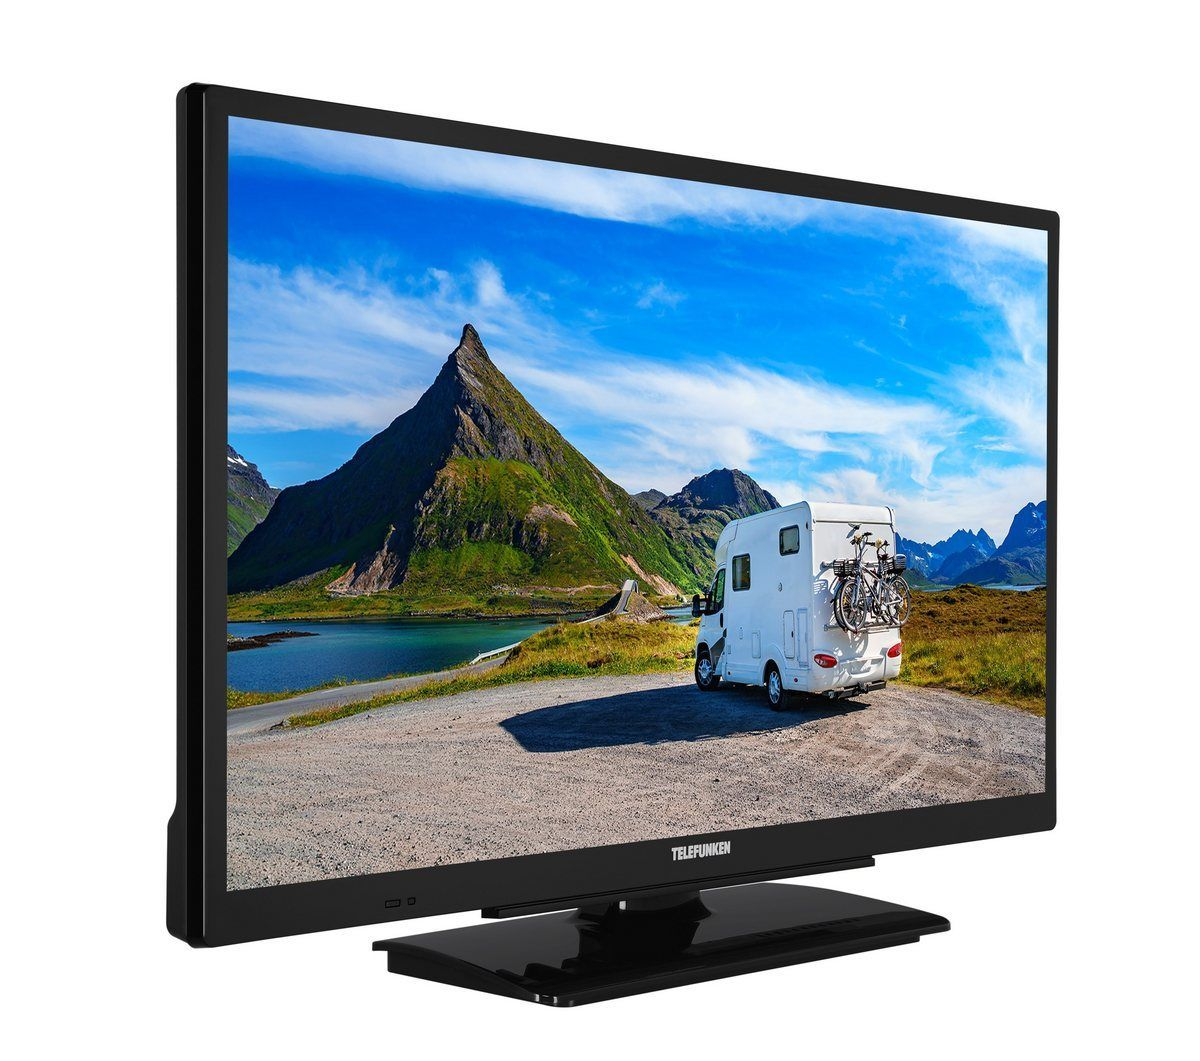 Buy Telefunken Led Tv 24 Inch Hd Ready Smart Tv 12v